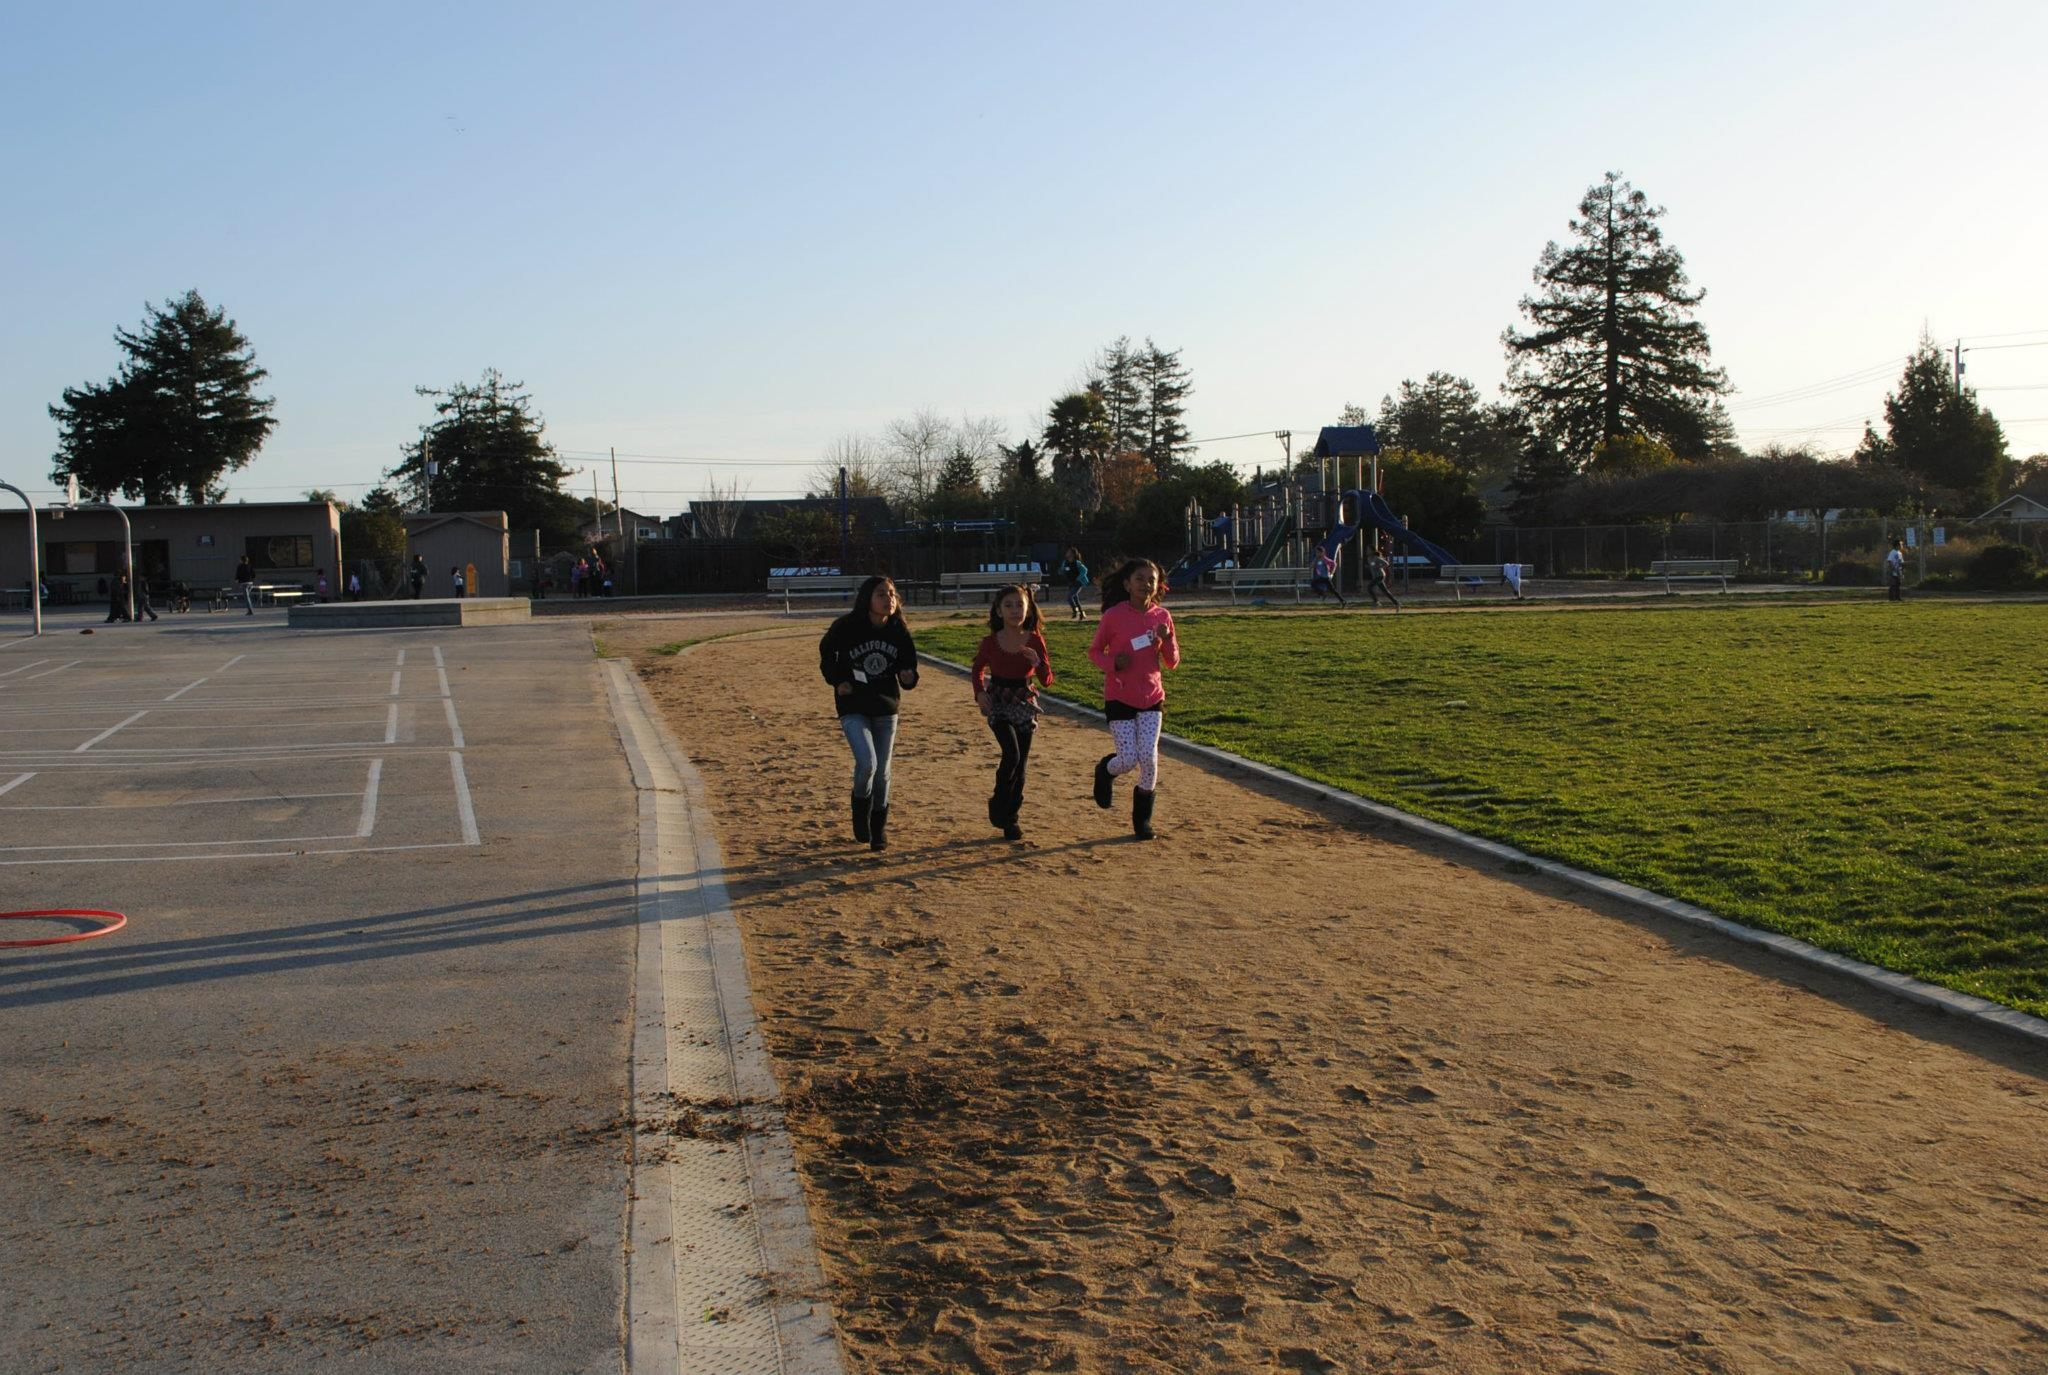 3 kids running the track at a school together